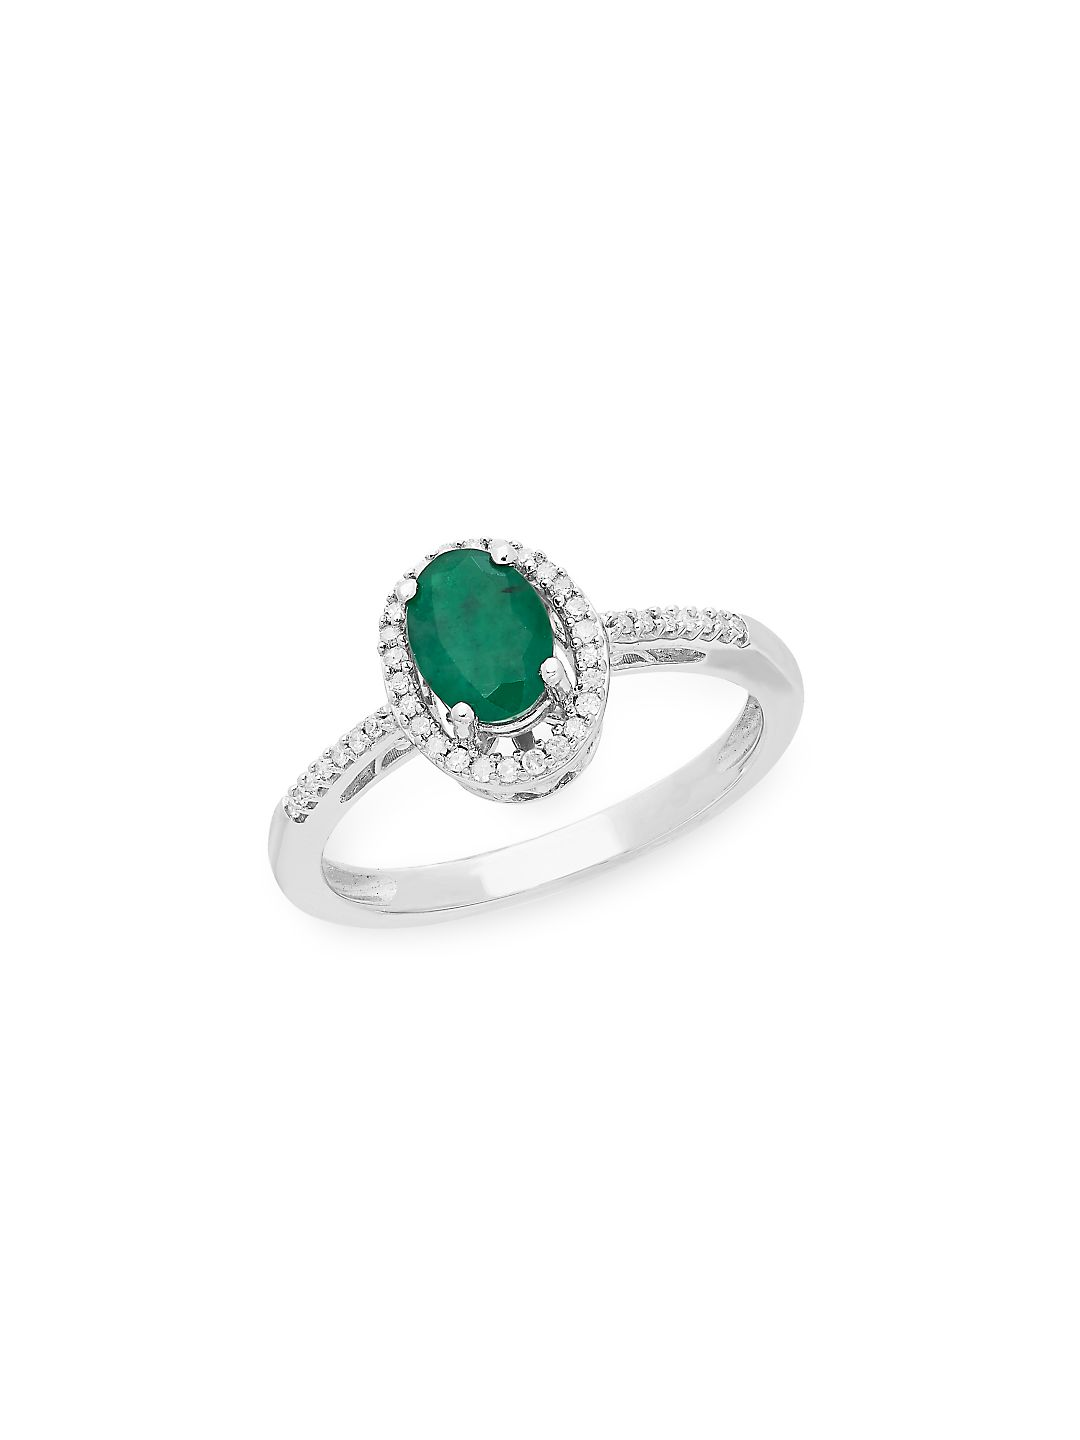 Sterling Silver, Emerald & Diamond Solitaire Ring